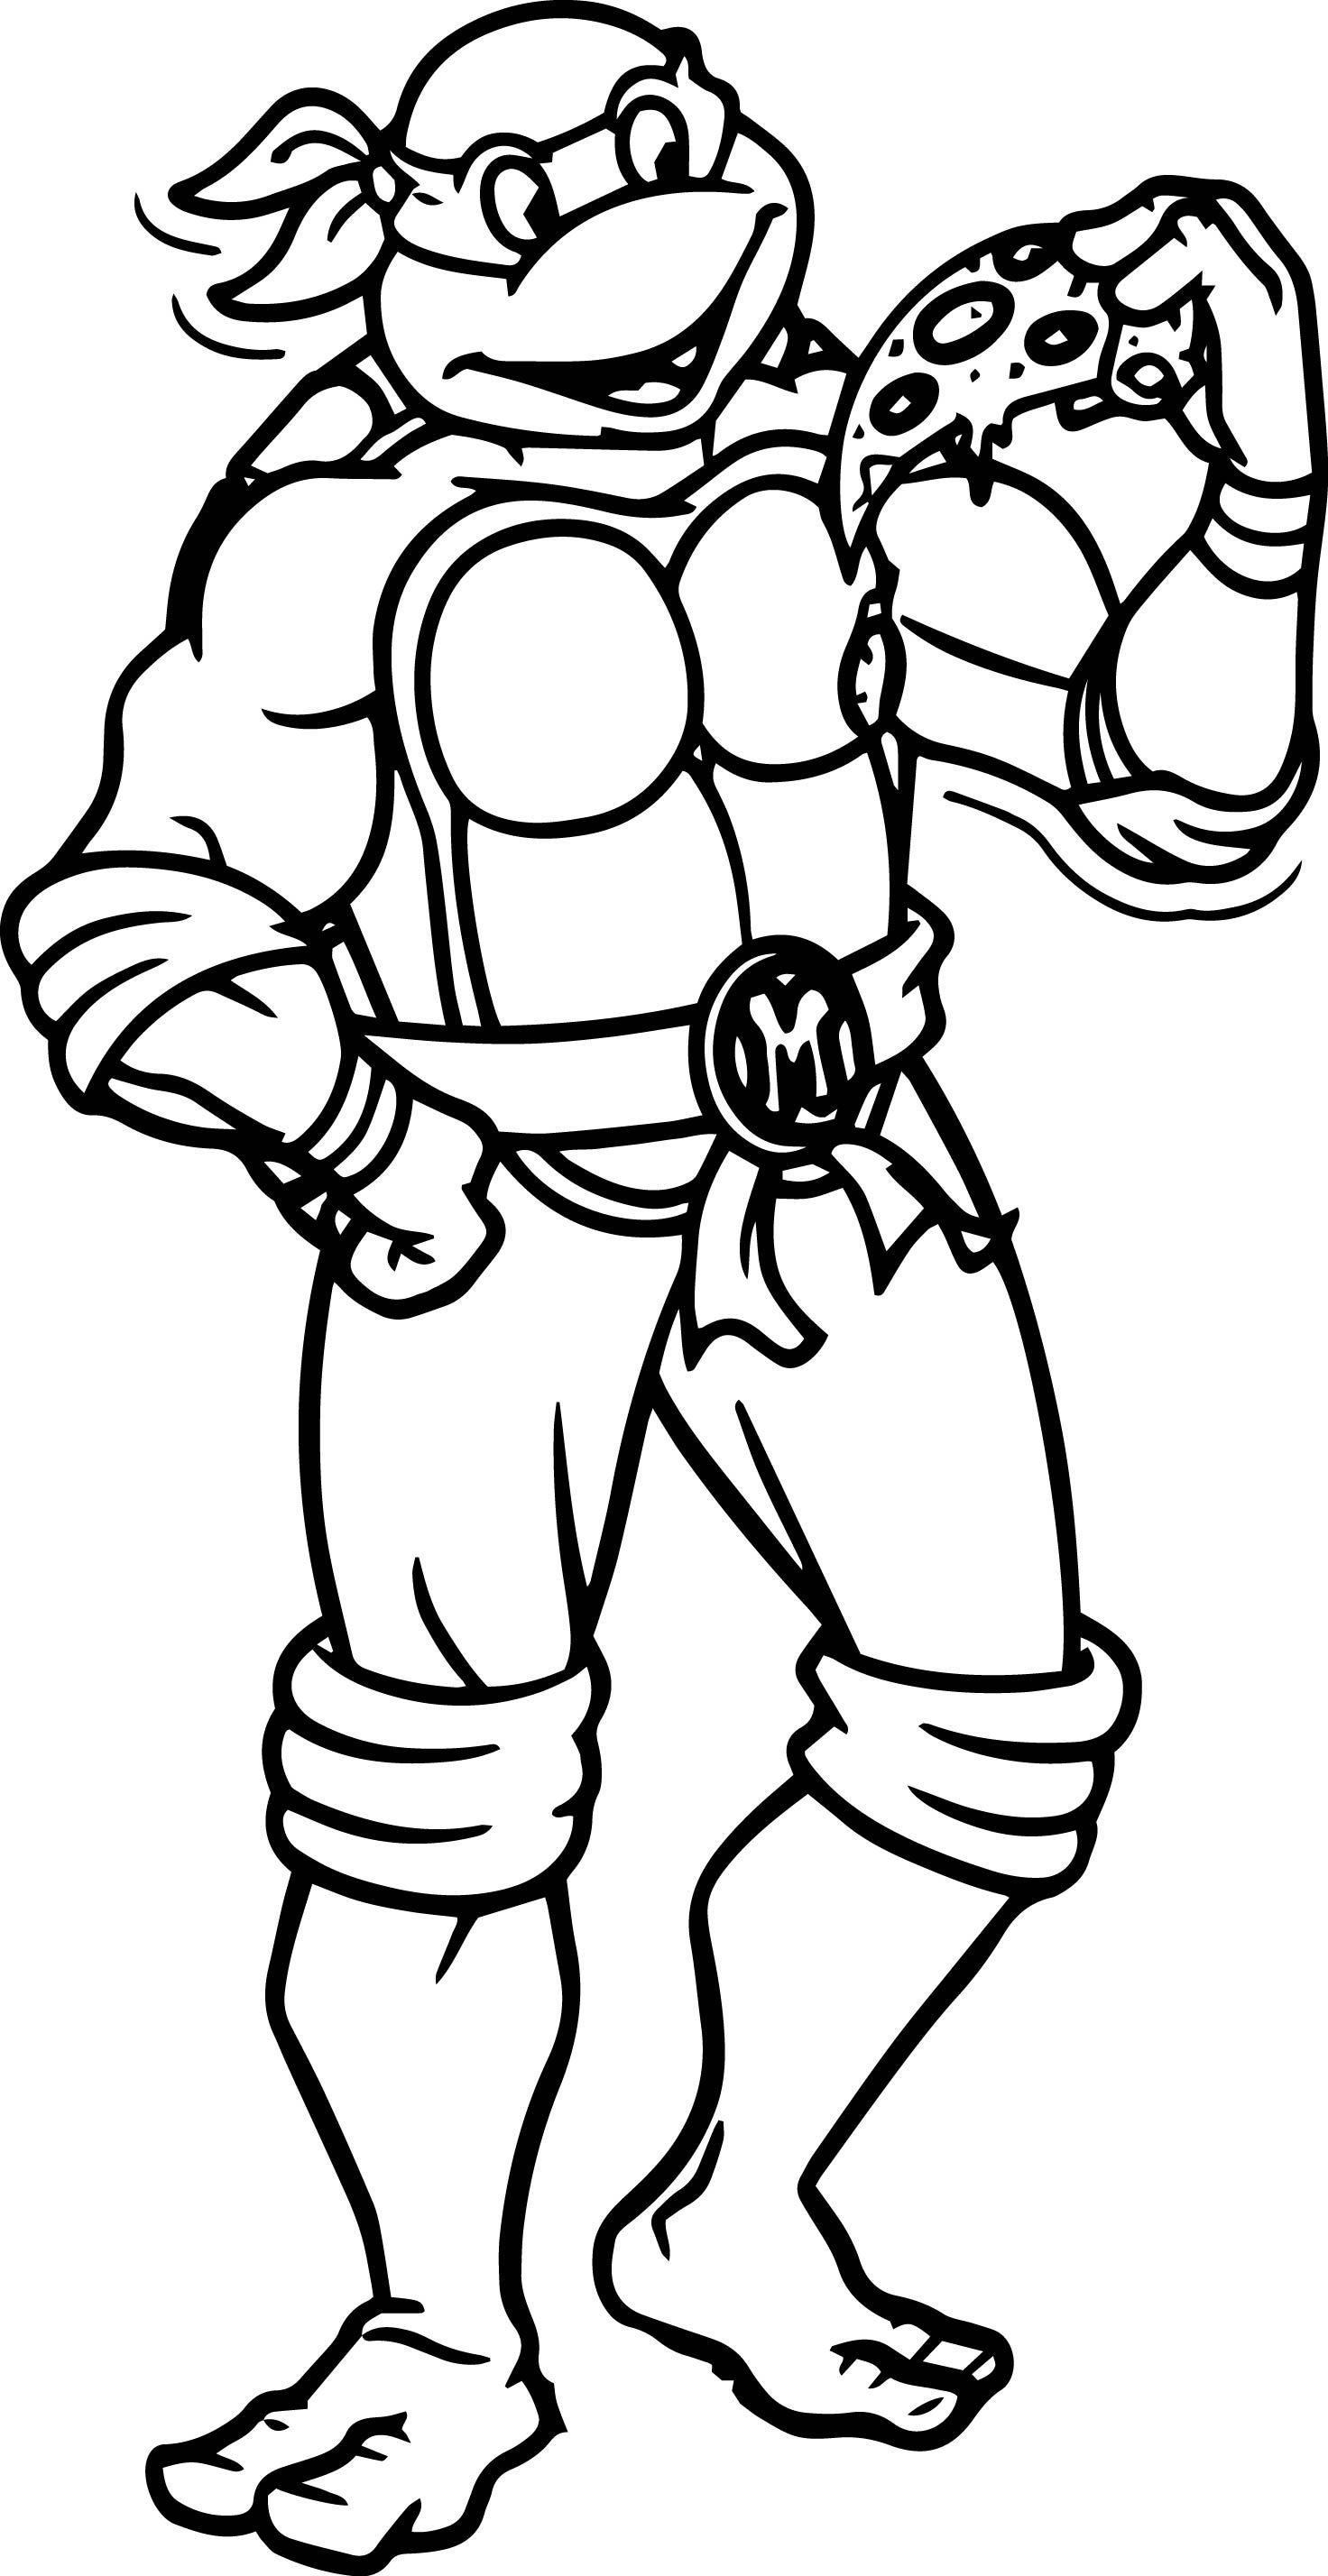 Coloring online ninja - Cool Ninja Turtle Cartoon Coloring Pages Check More At Http Wecoloringpage Com